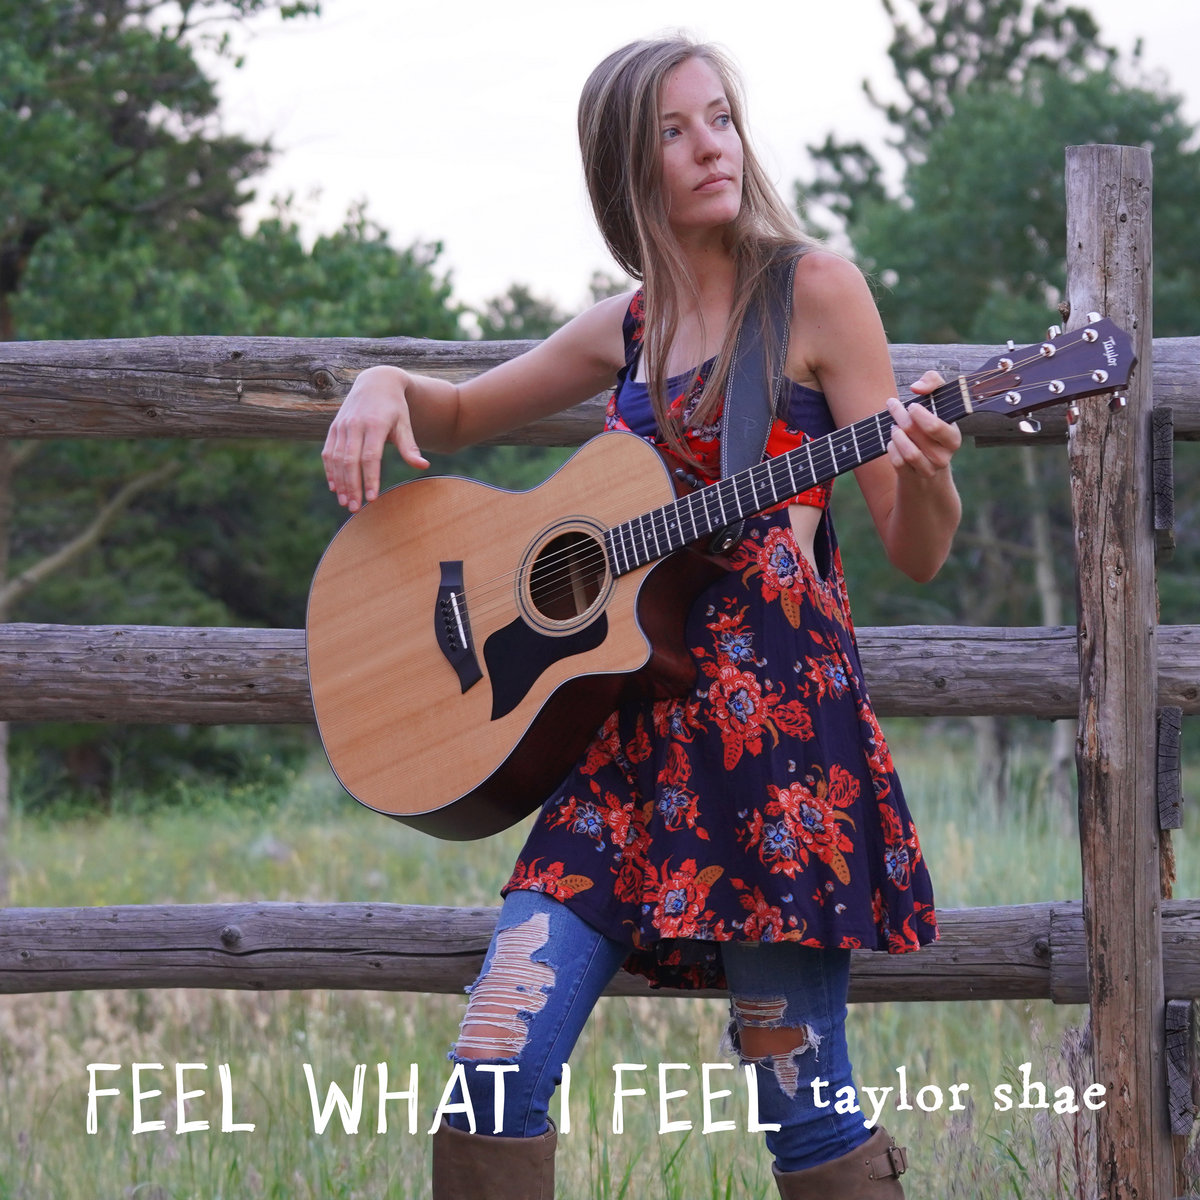 Feel What I Feel by Taylor Shae